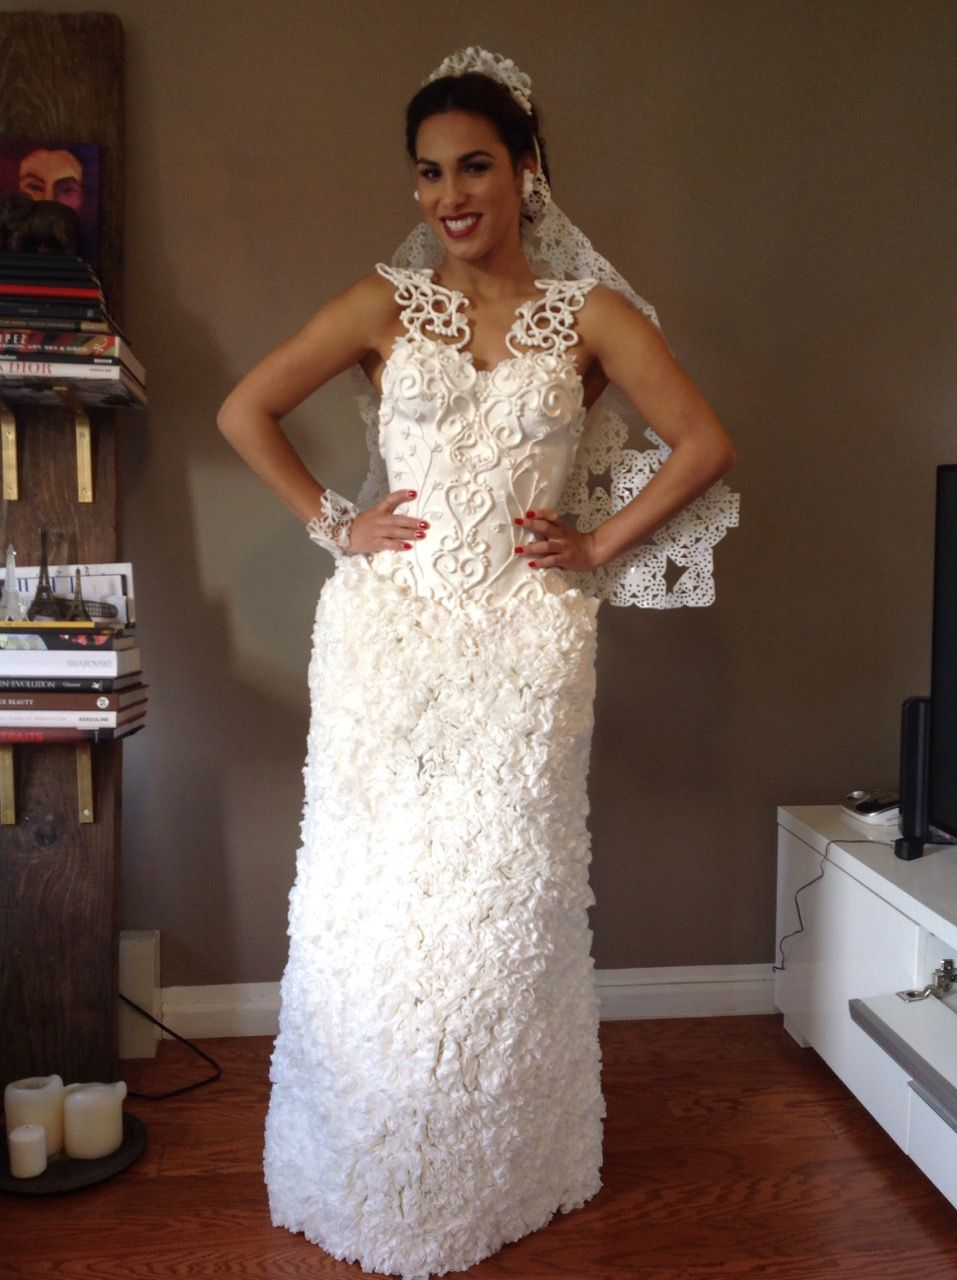 On Thursday Cheap Chic Weddings Hosted Its Annual Toilet Paper Wedding Dress Contest And Call Me Crazy But I Thought The Top 10 Finalist Gowns Were